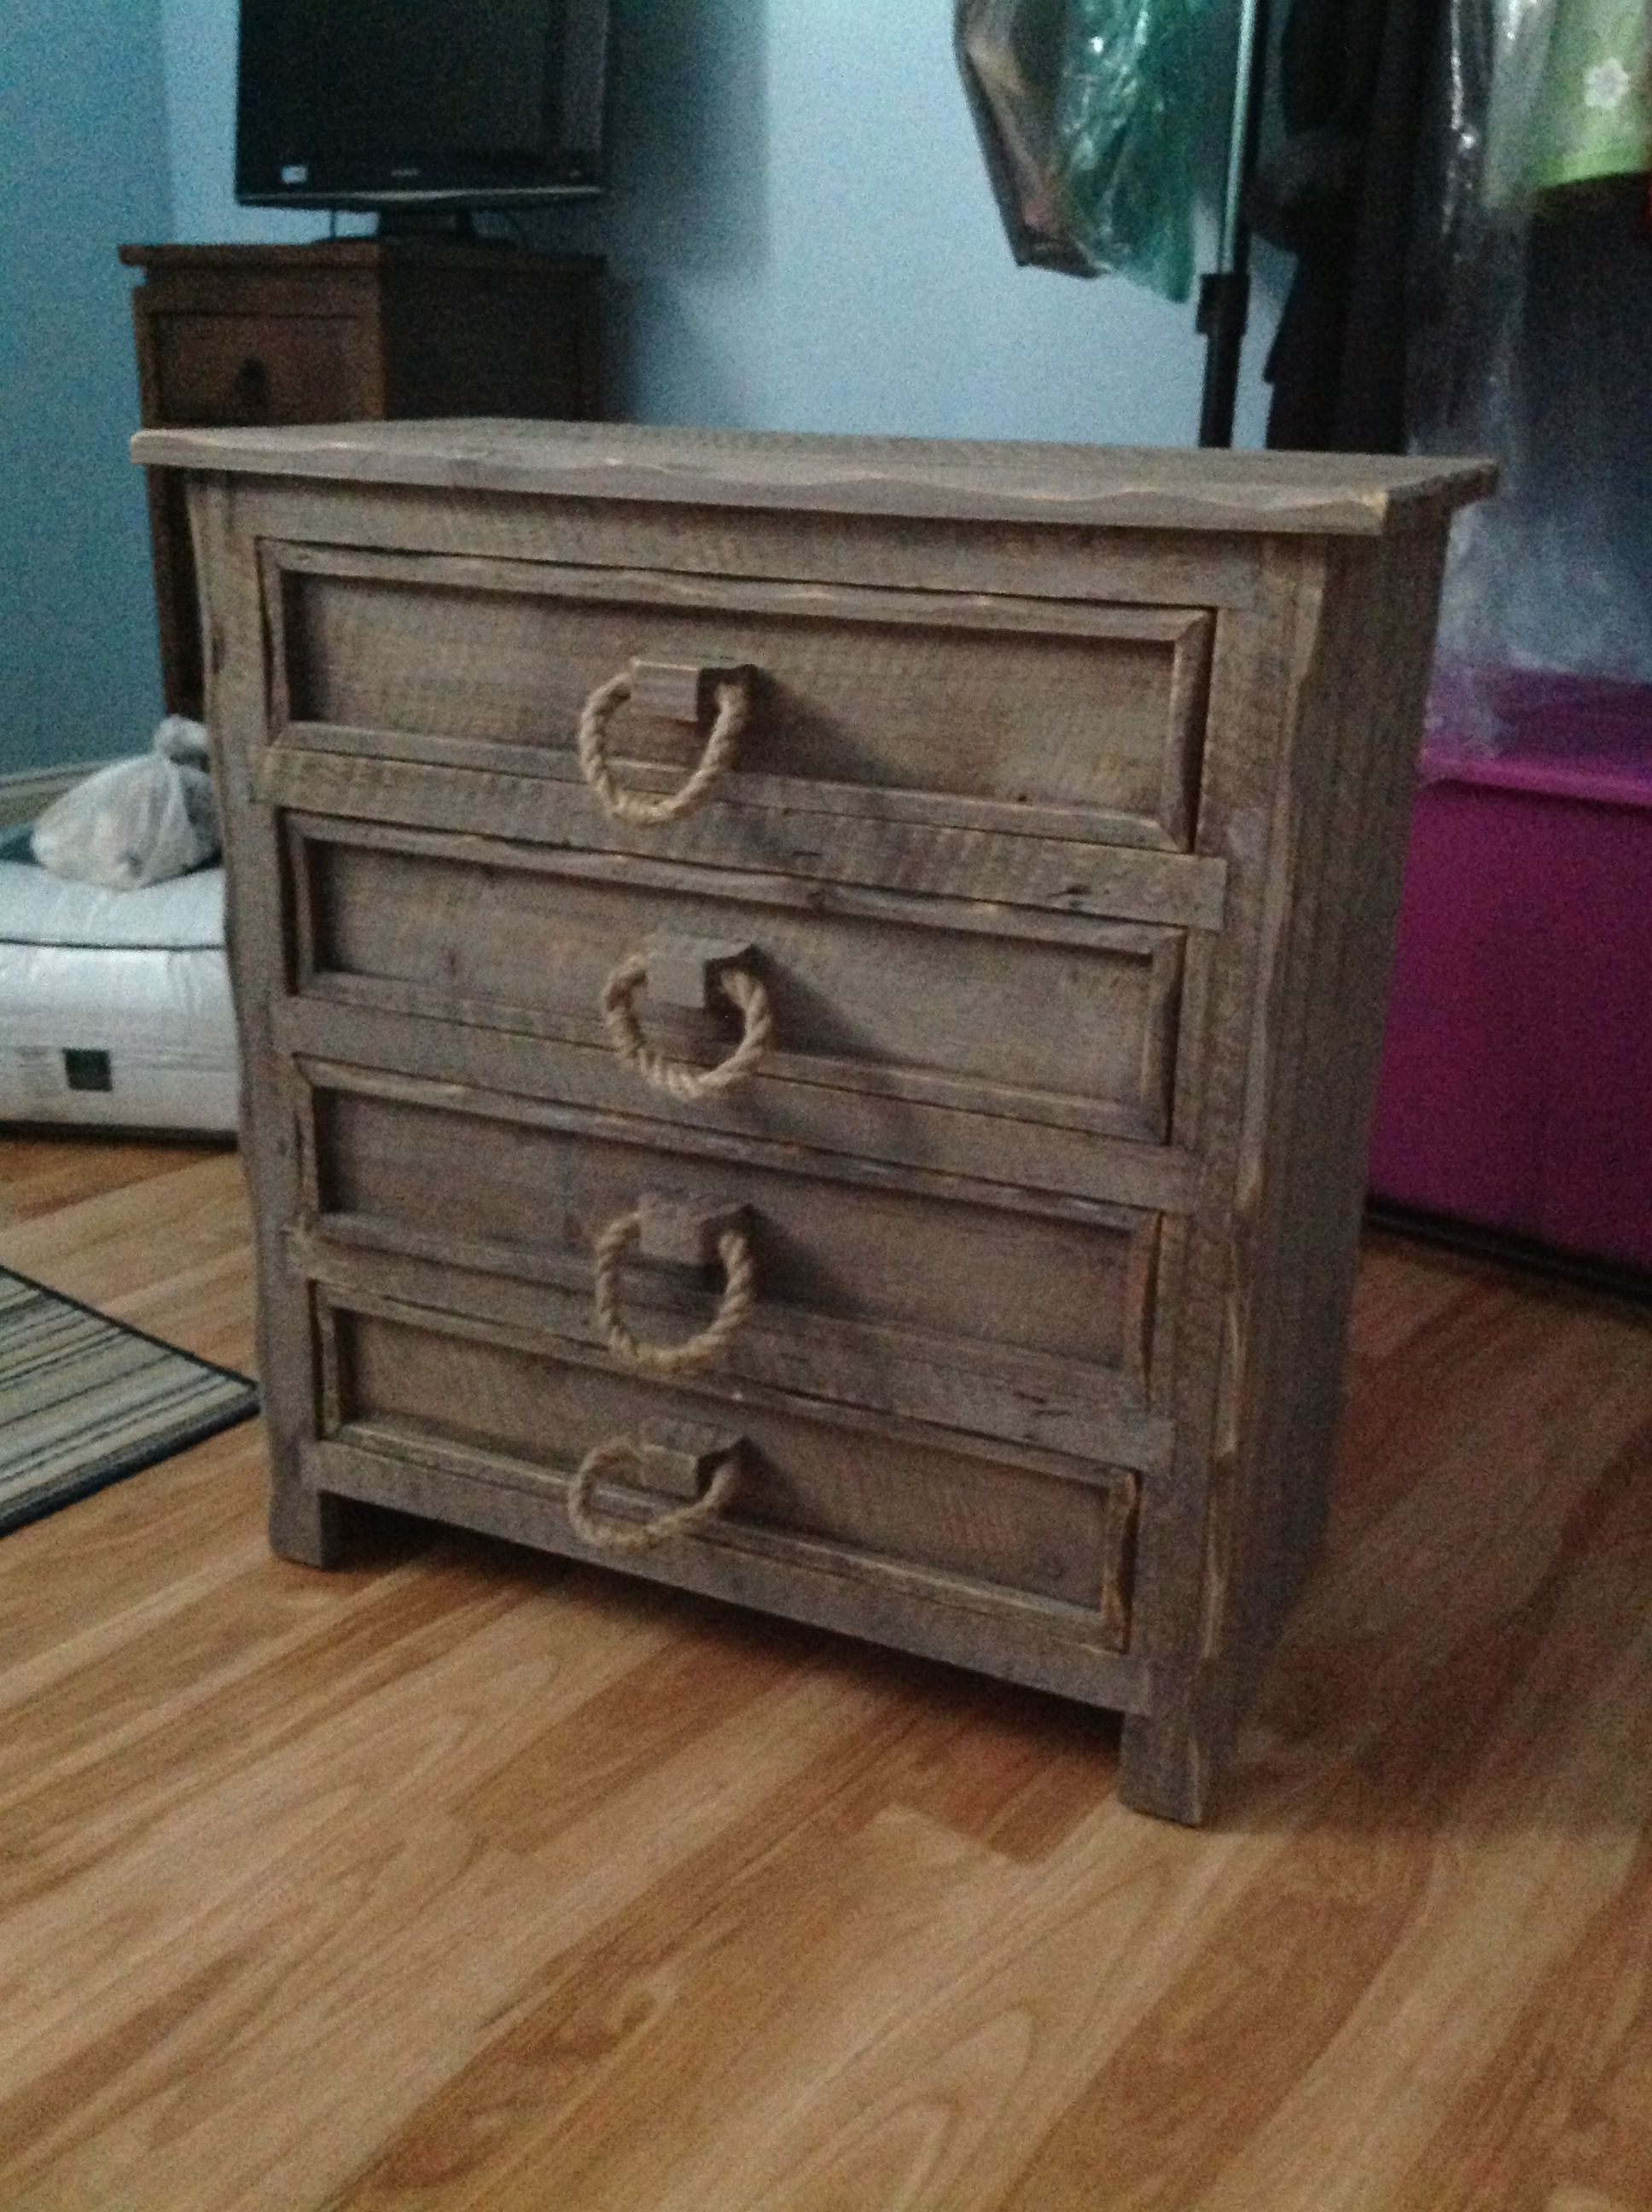 Home goods find dresser as nightstand furniture home goods